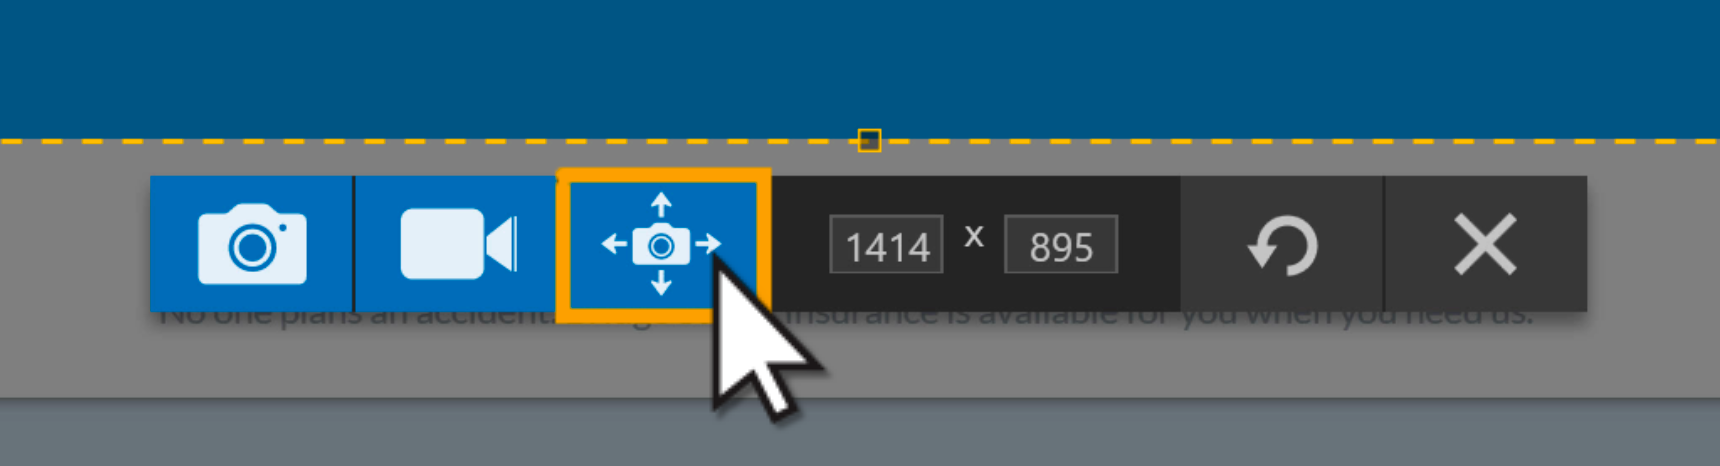 The Snagit capture toolbar with an orange box around the panoramic capture button